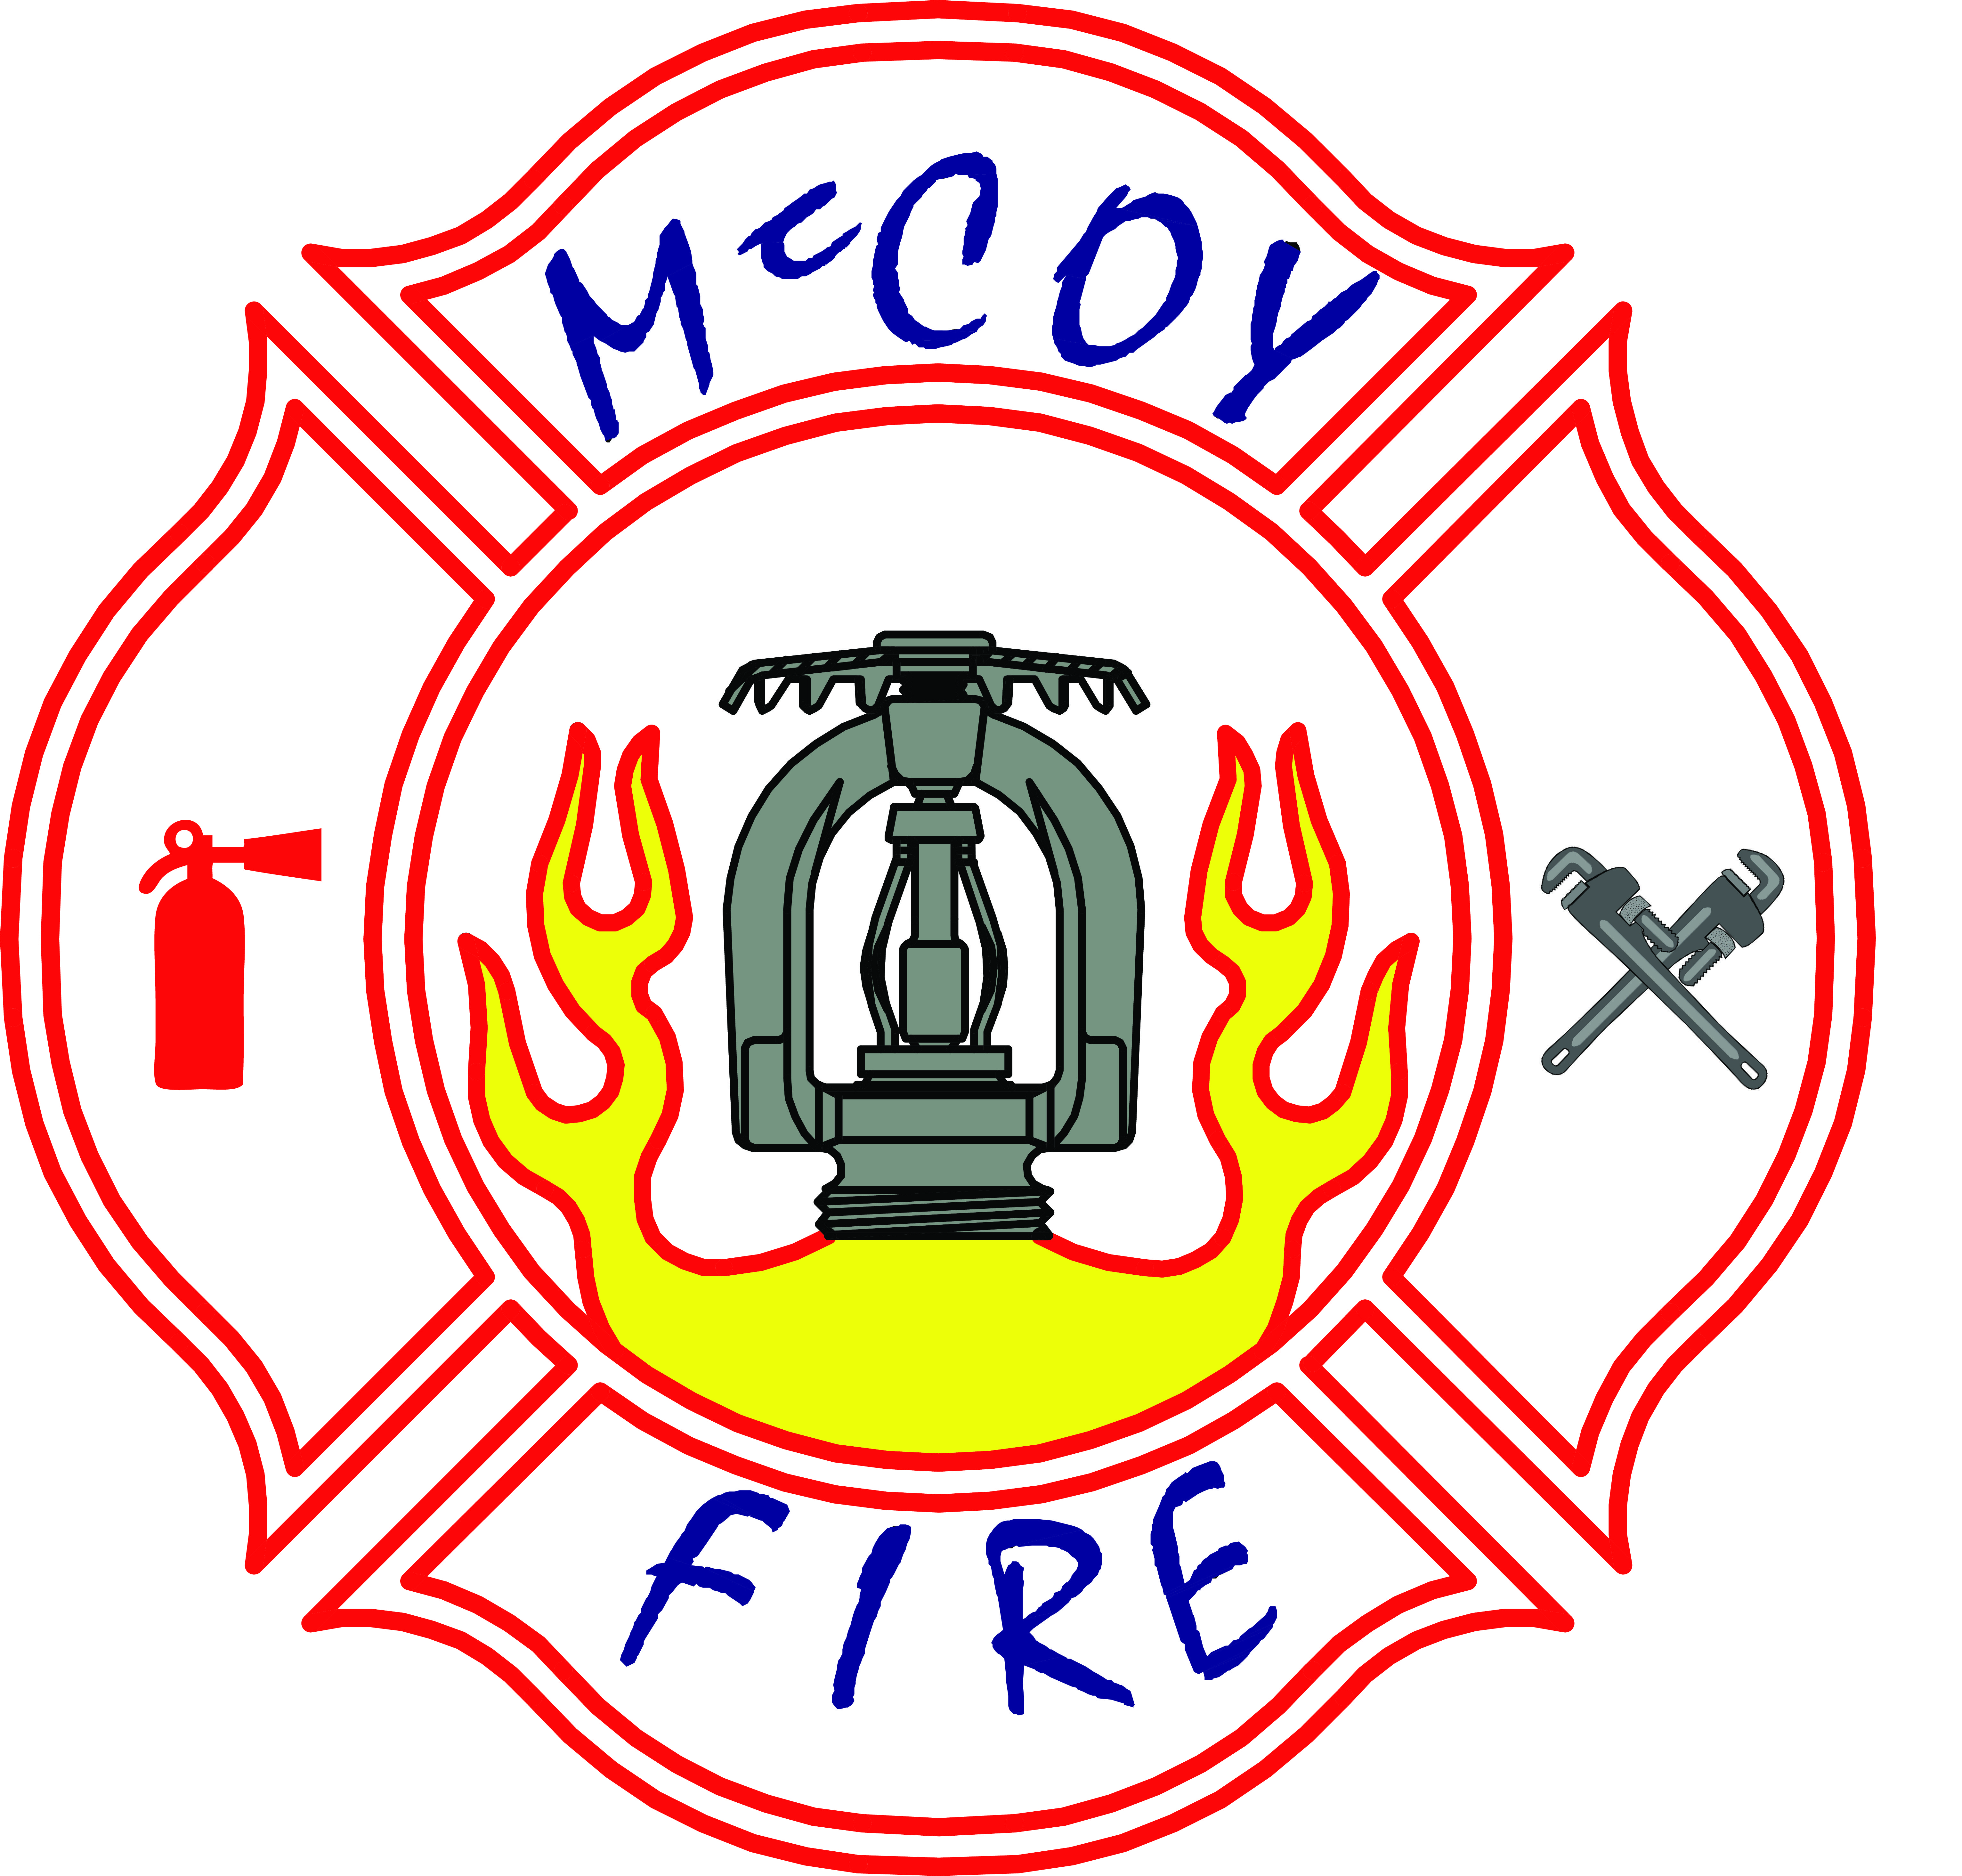 McCoy Fire & Safety, inc